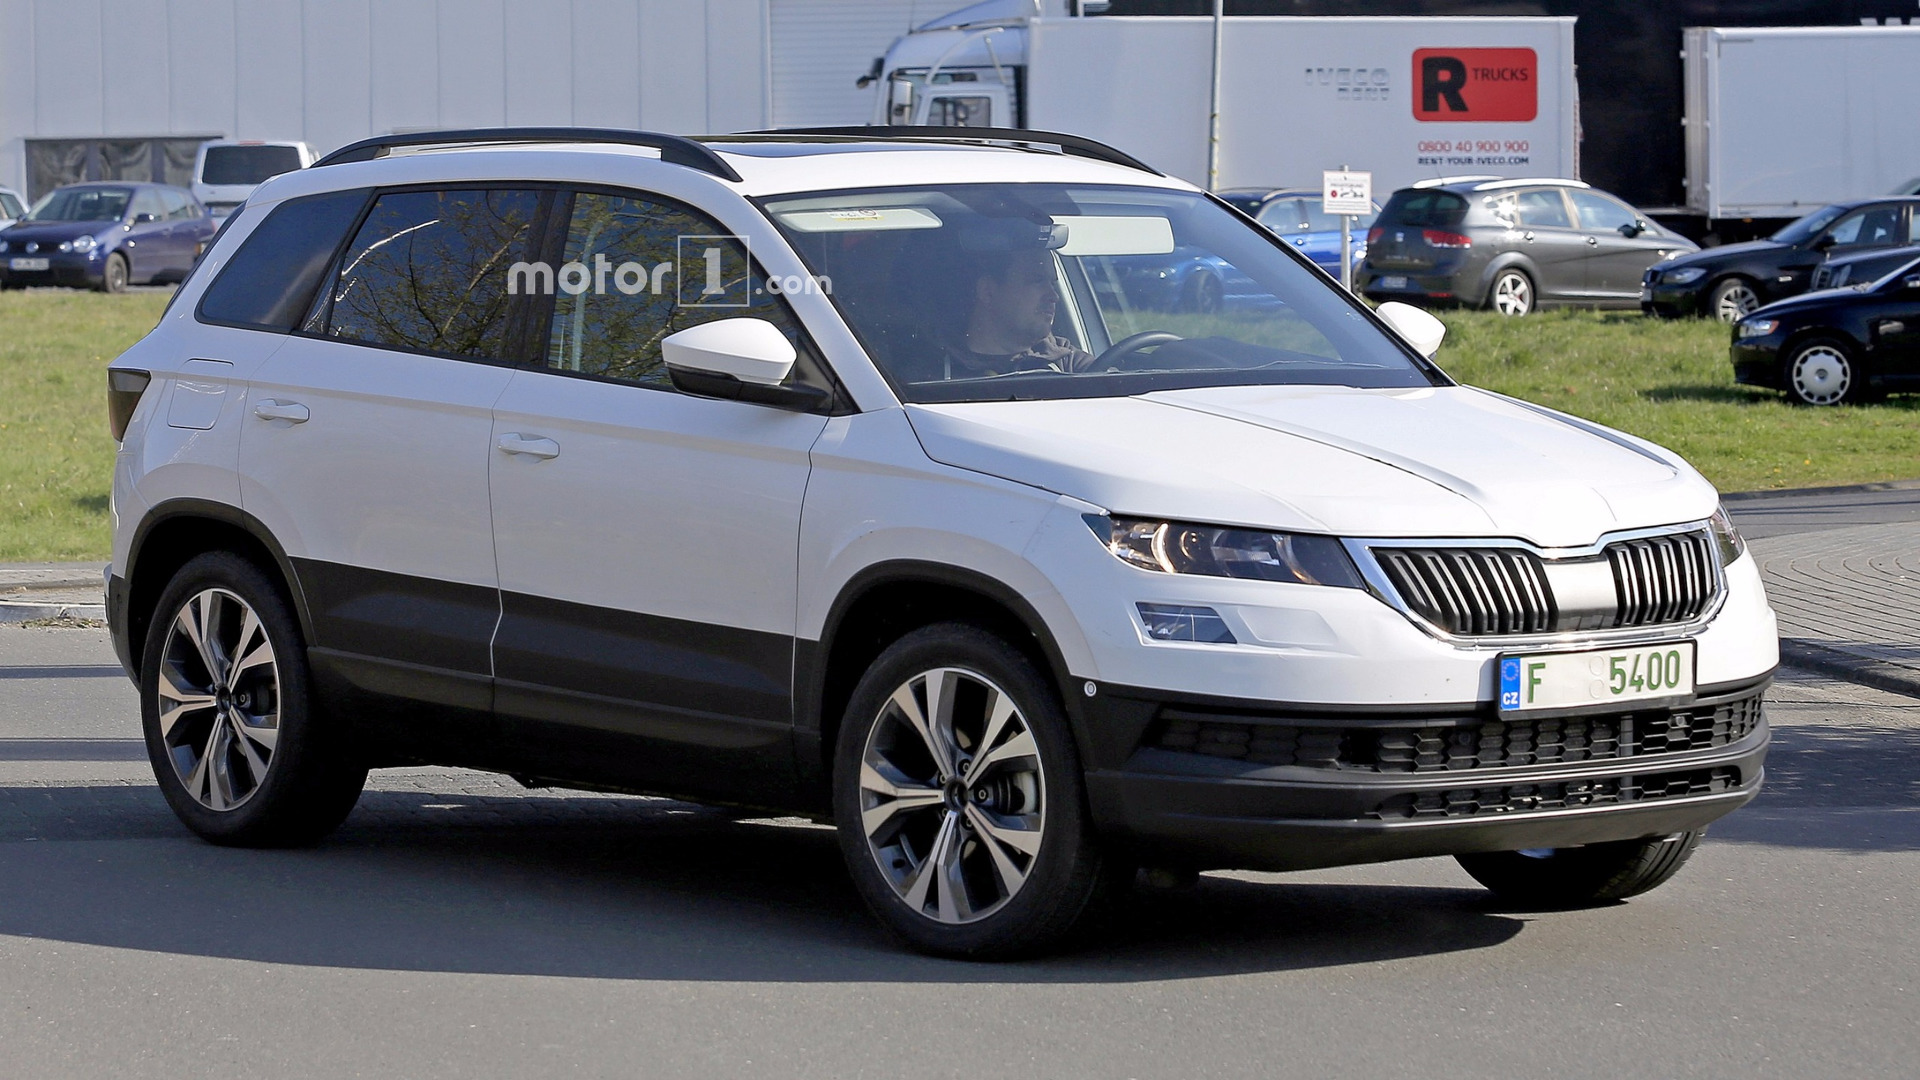 2018 skoda yeti karoq spied up close with clever disguise. Black Bedroom Furniture Sets. Home Design Ideas